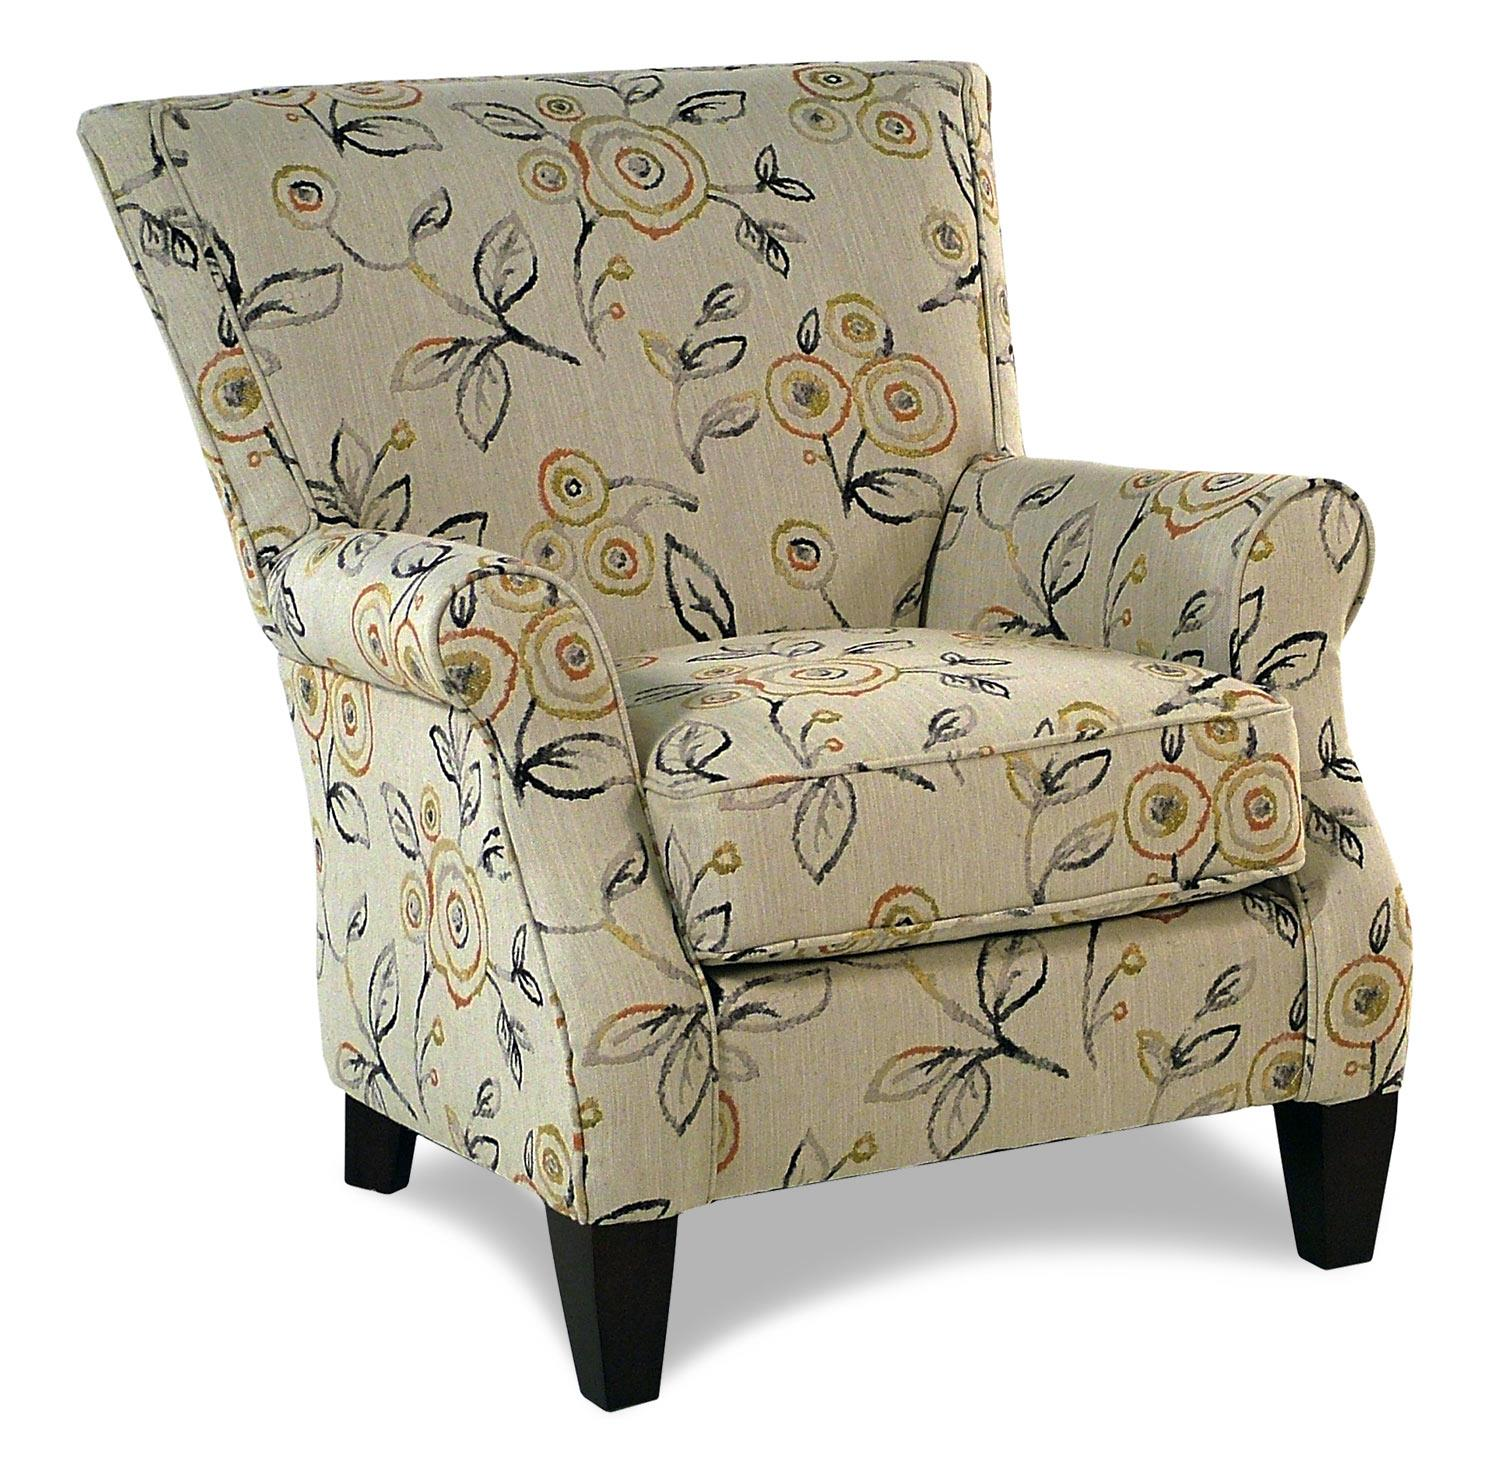 Cozy Life Accent Chairs Contemporary Upholstered Chair - Item Number: 061310-JARVIS10